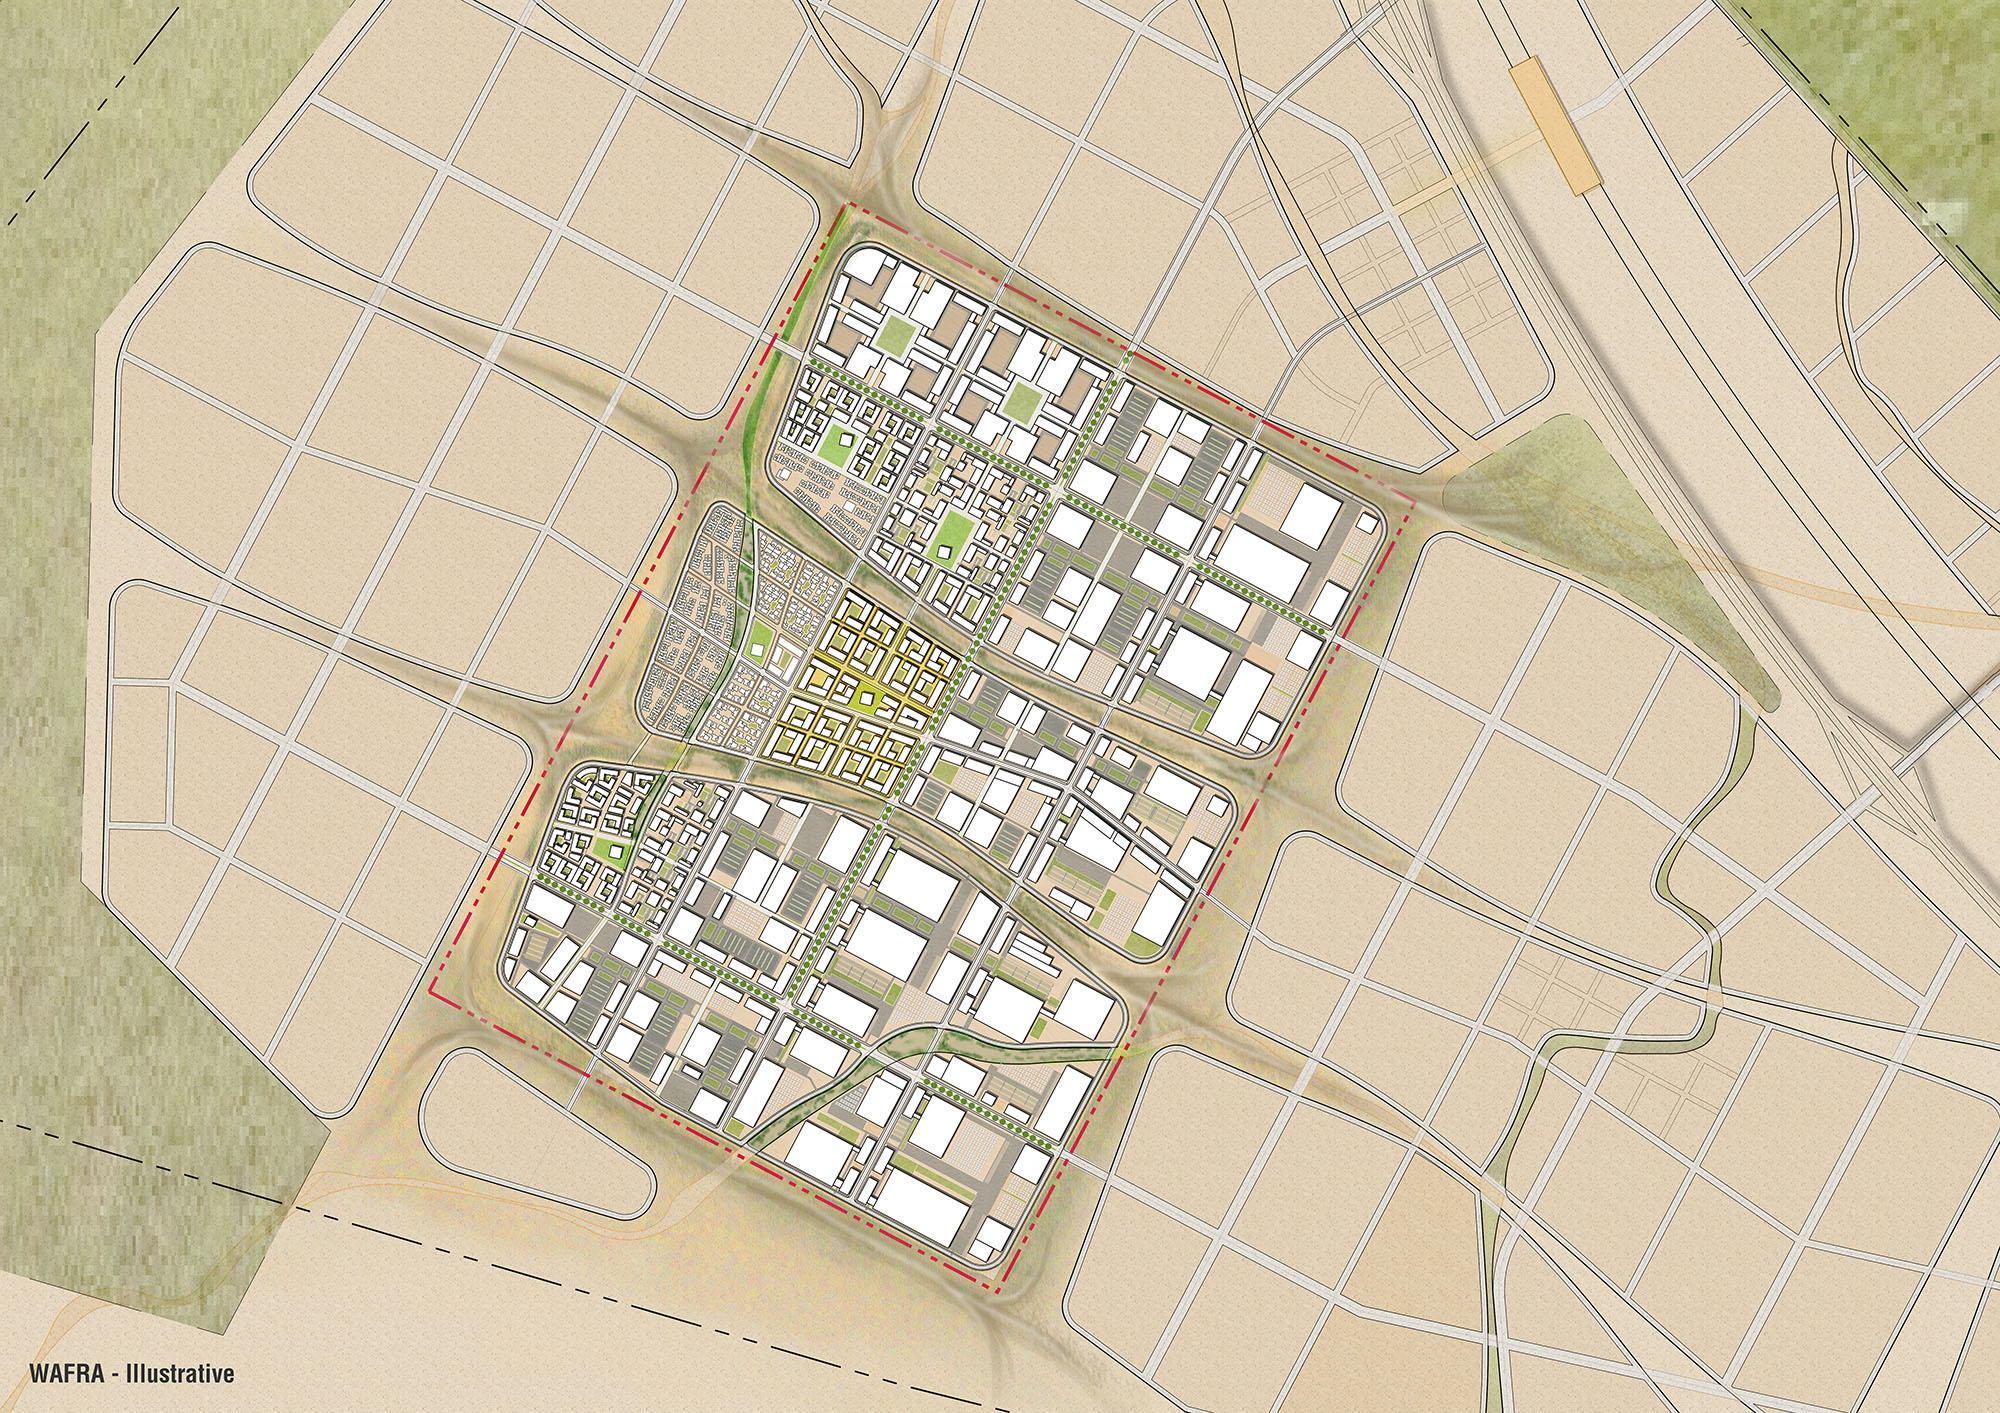 Kuwait Economic Zones